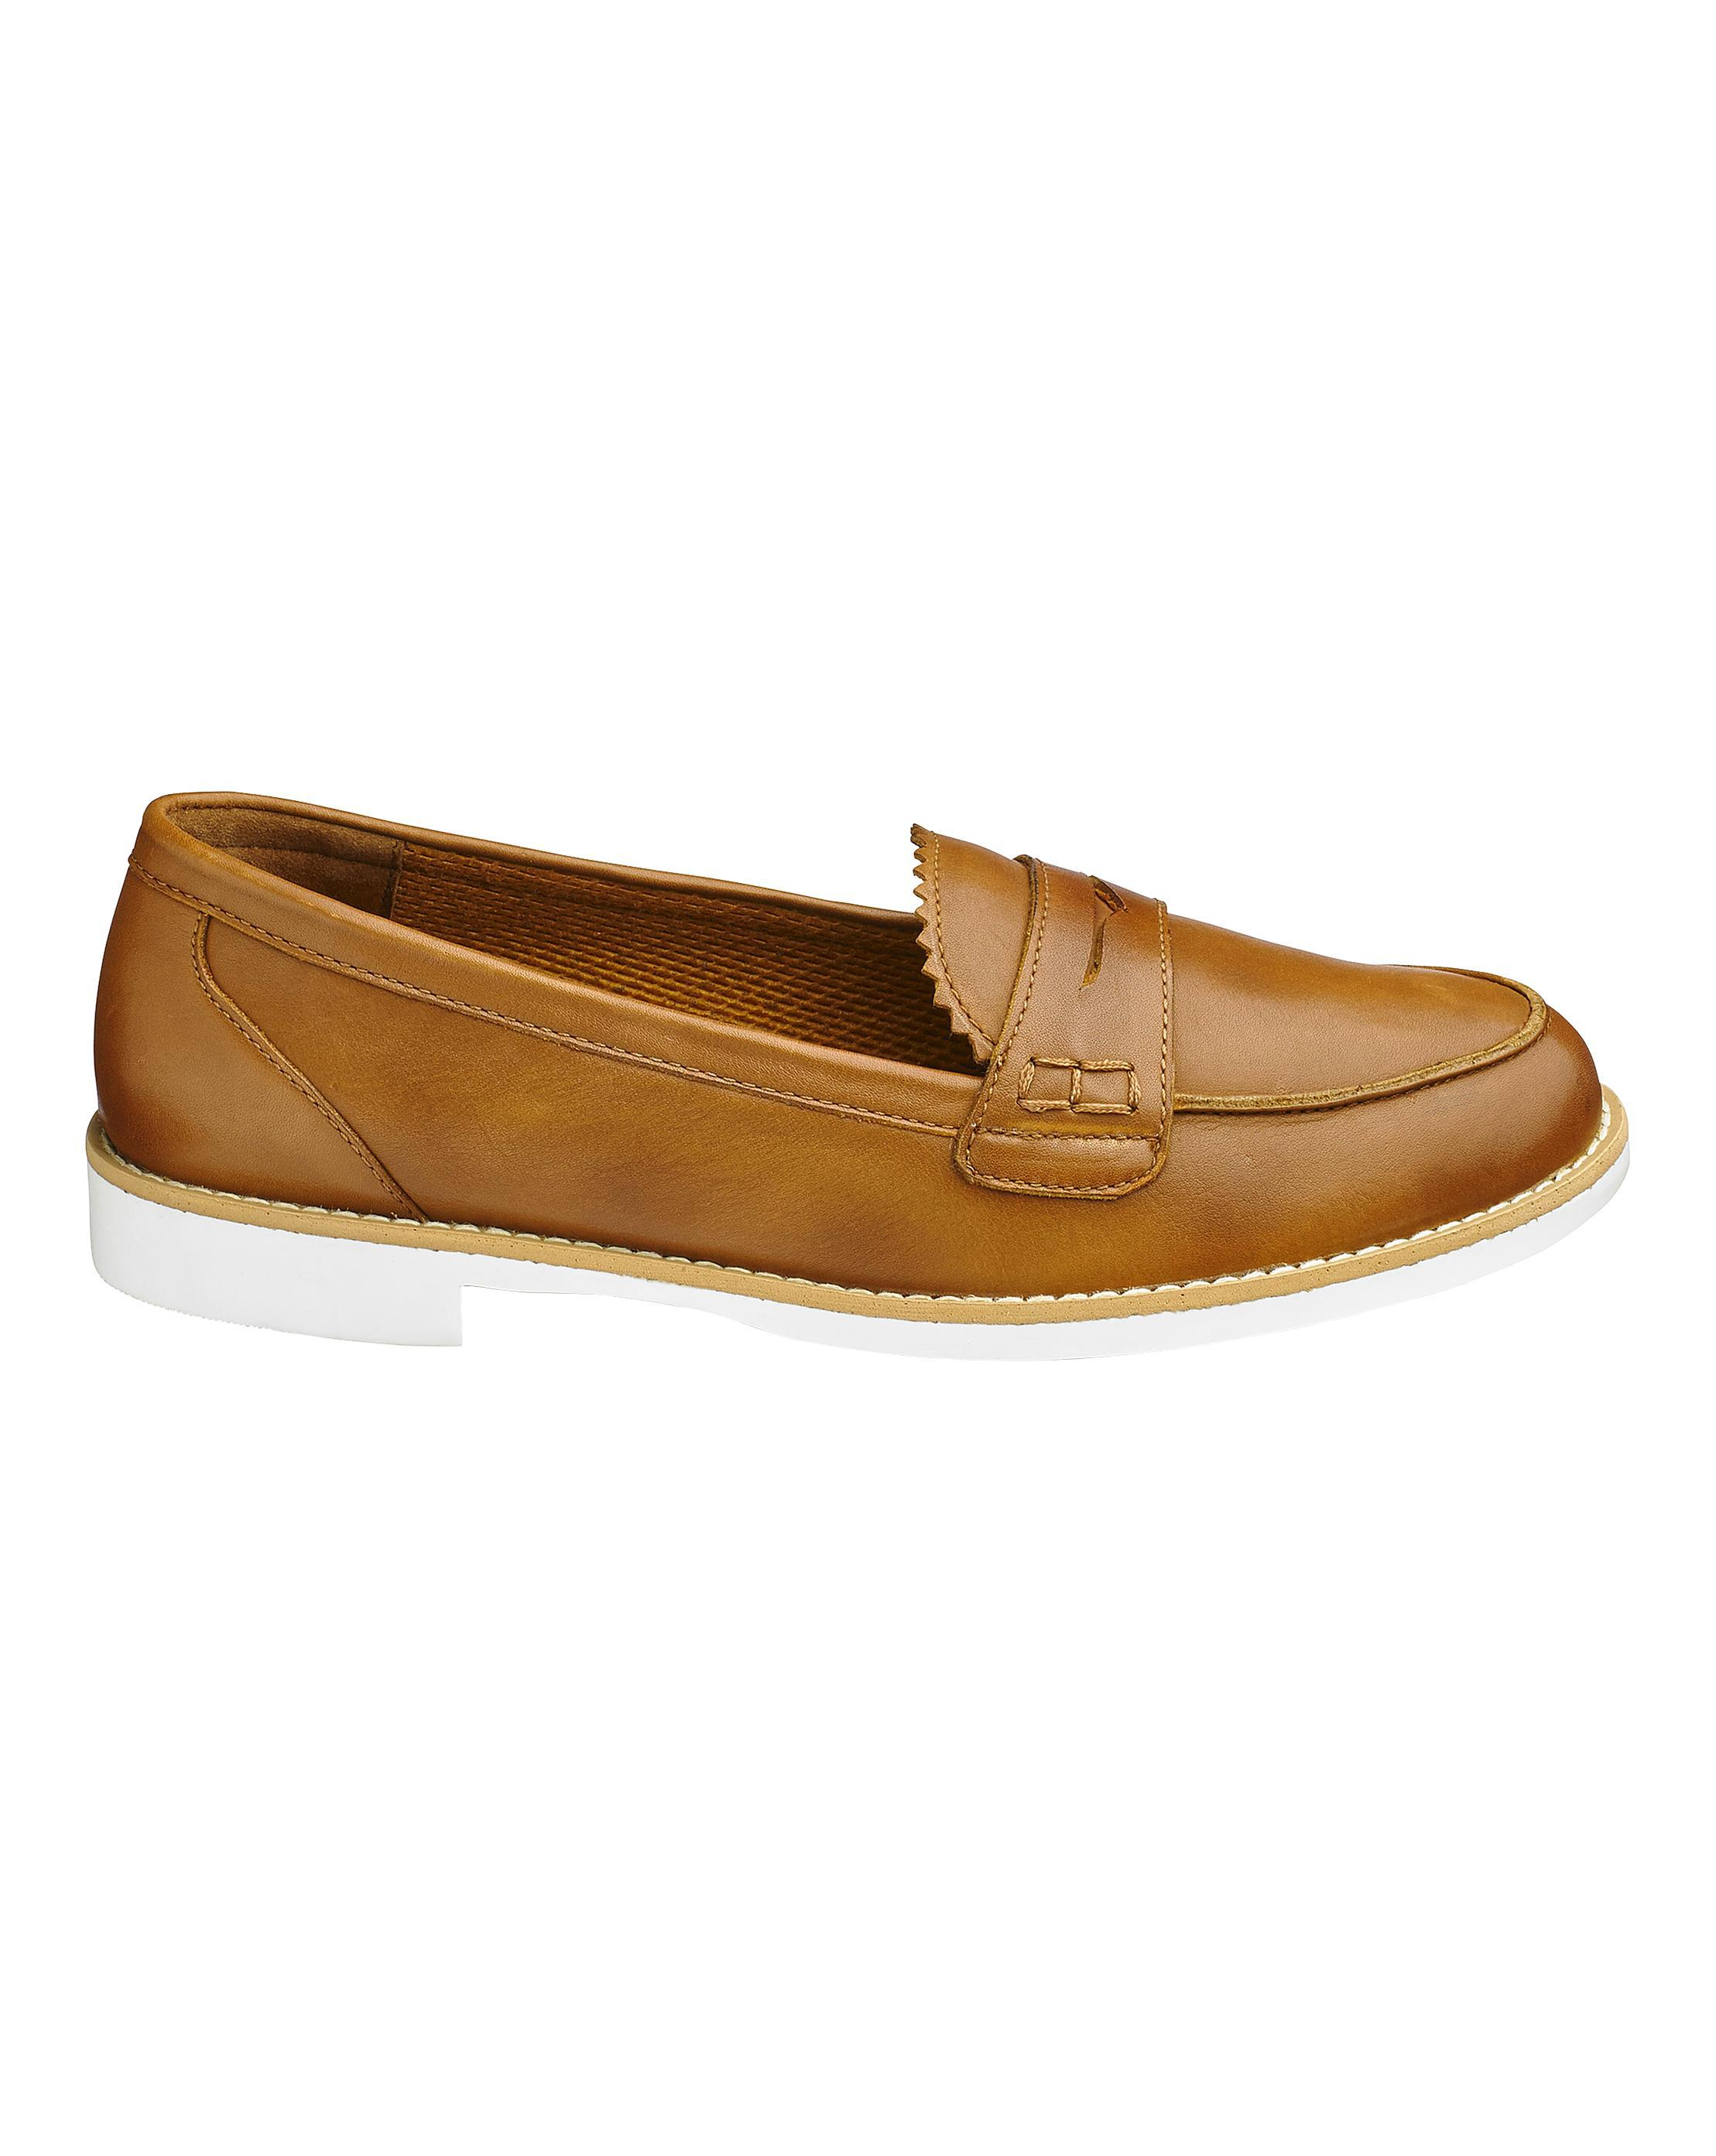 Heavenly Soles Loafers